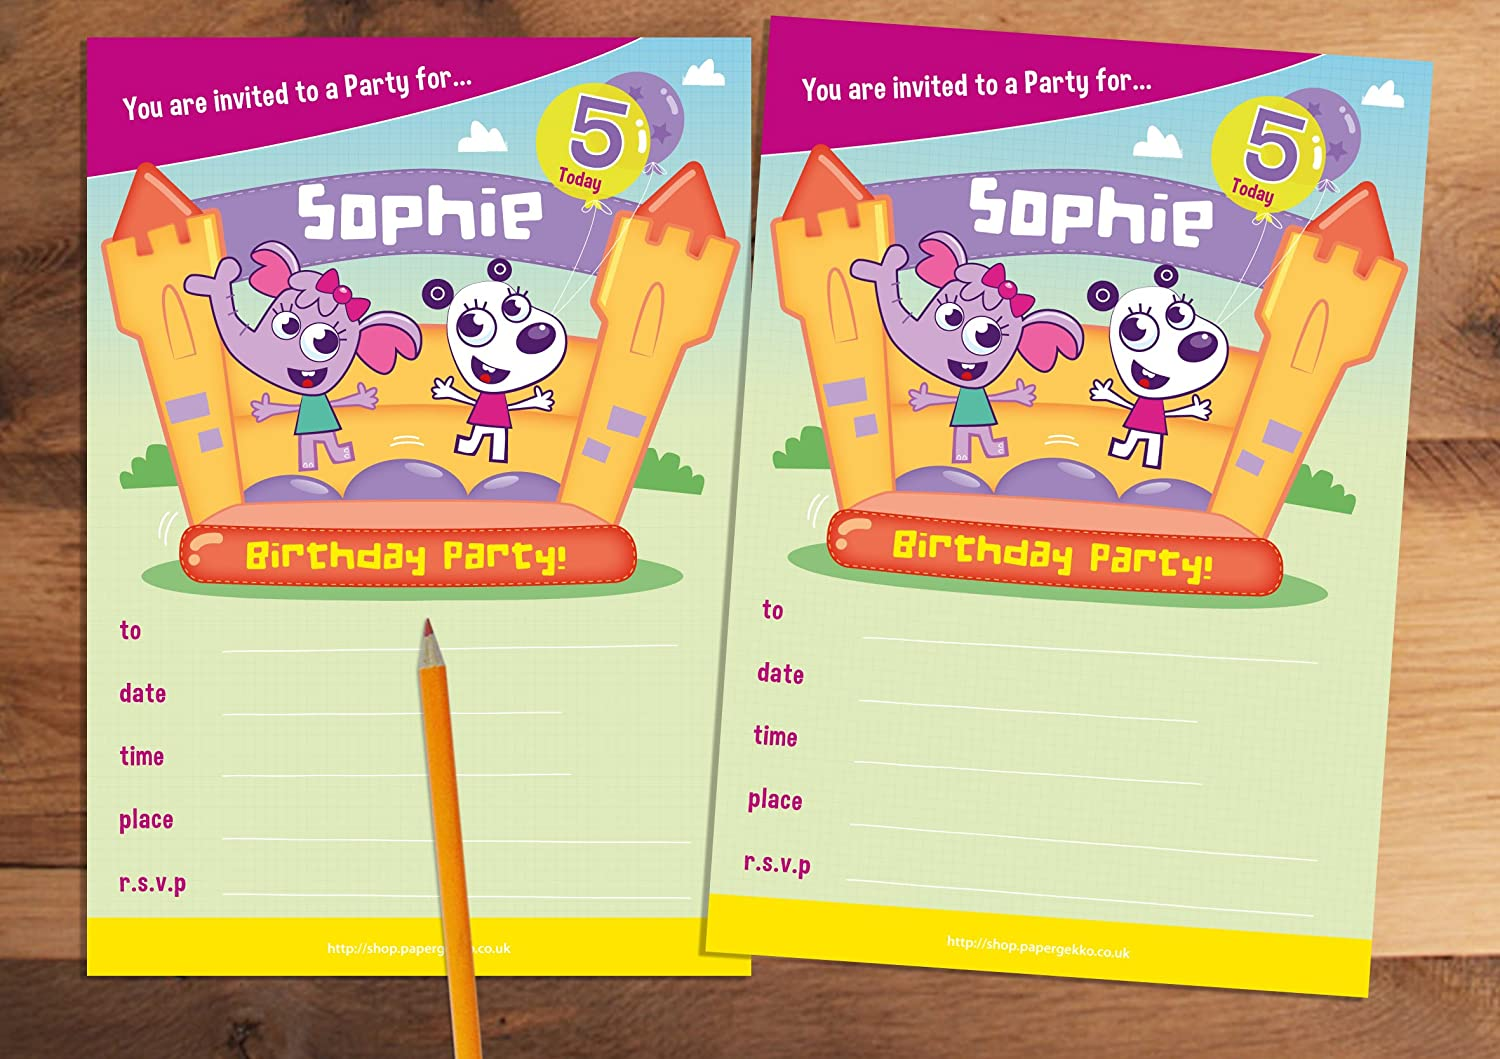 20 x A5 Childrens Birthday Party Invitations Various Designs